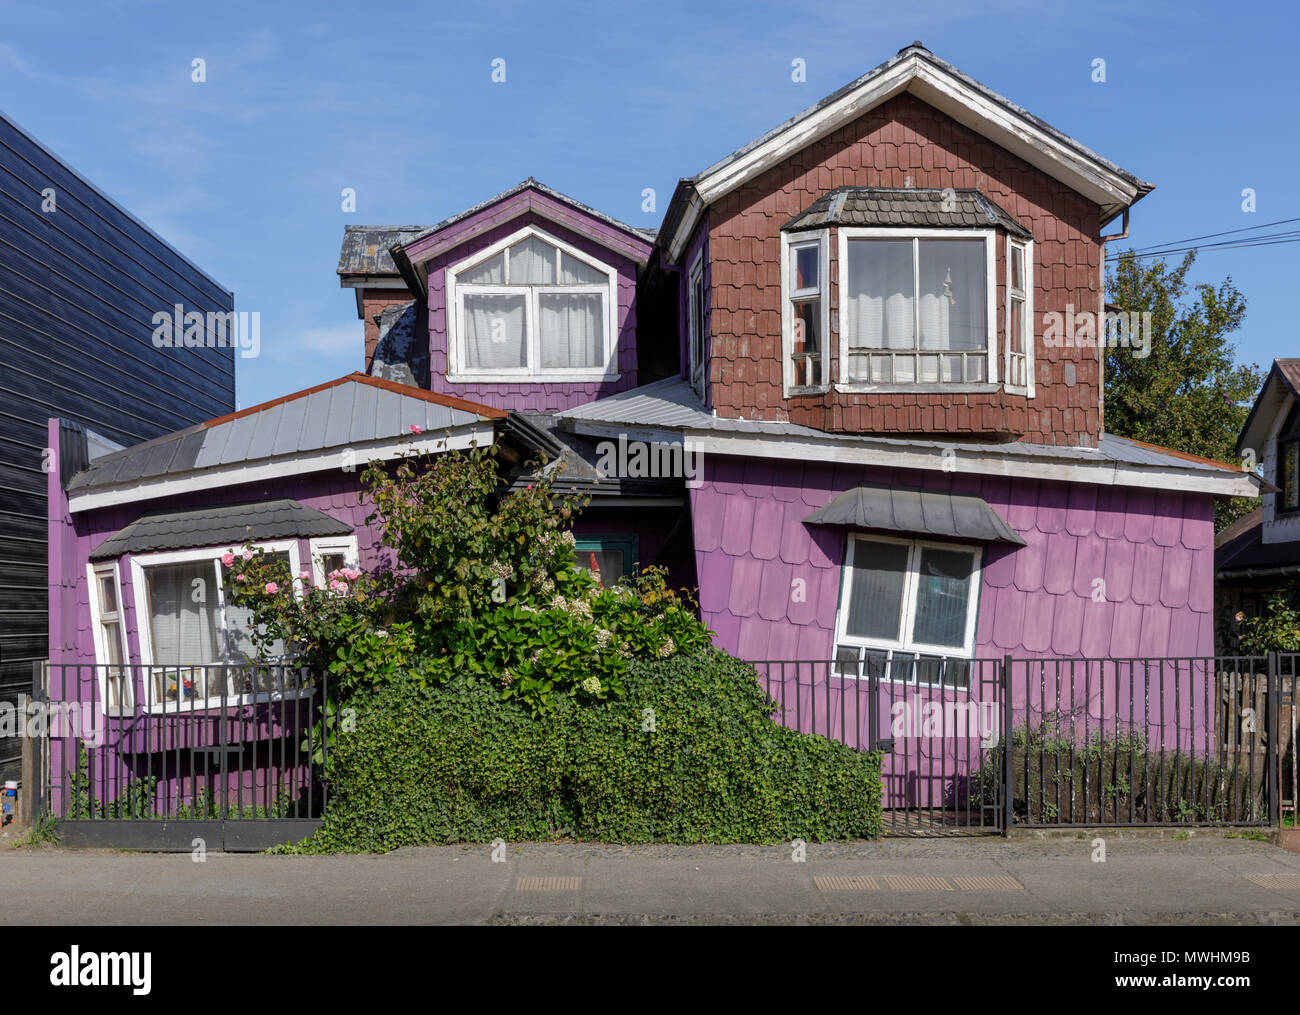 Dalcahue, Chiloé, Chile, 2018: A house shingled with tejuelas, first floor raked to unusual angle. - Stock Image